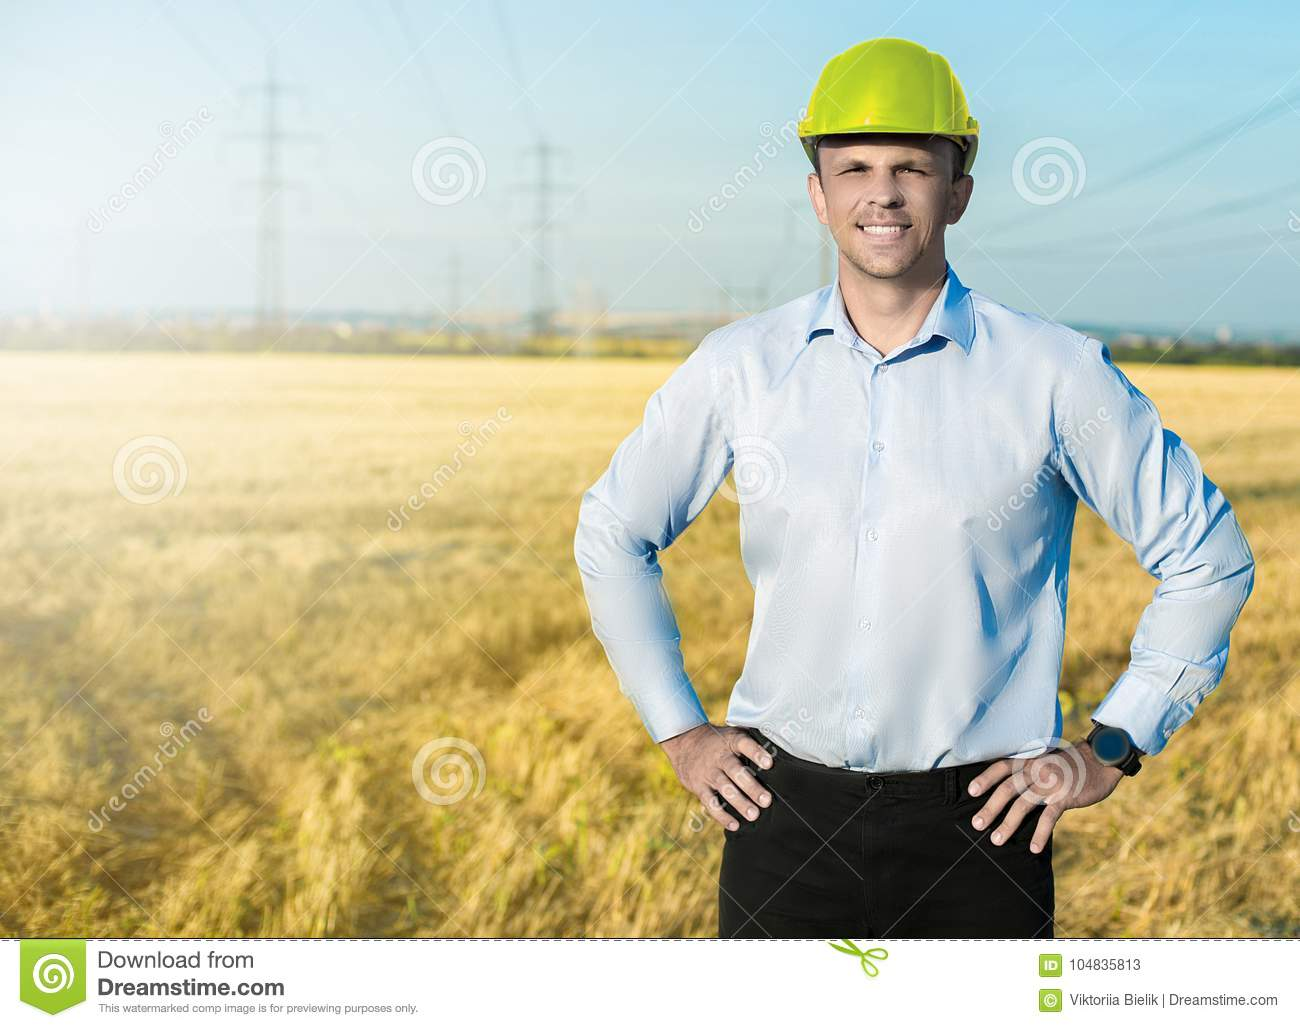 Young blue collar worker or engineer wearing in yellow helmet stands in the field with wide smile.